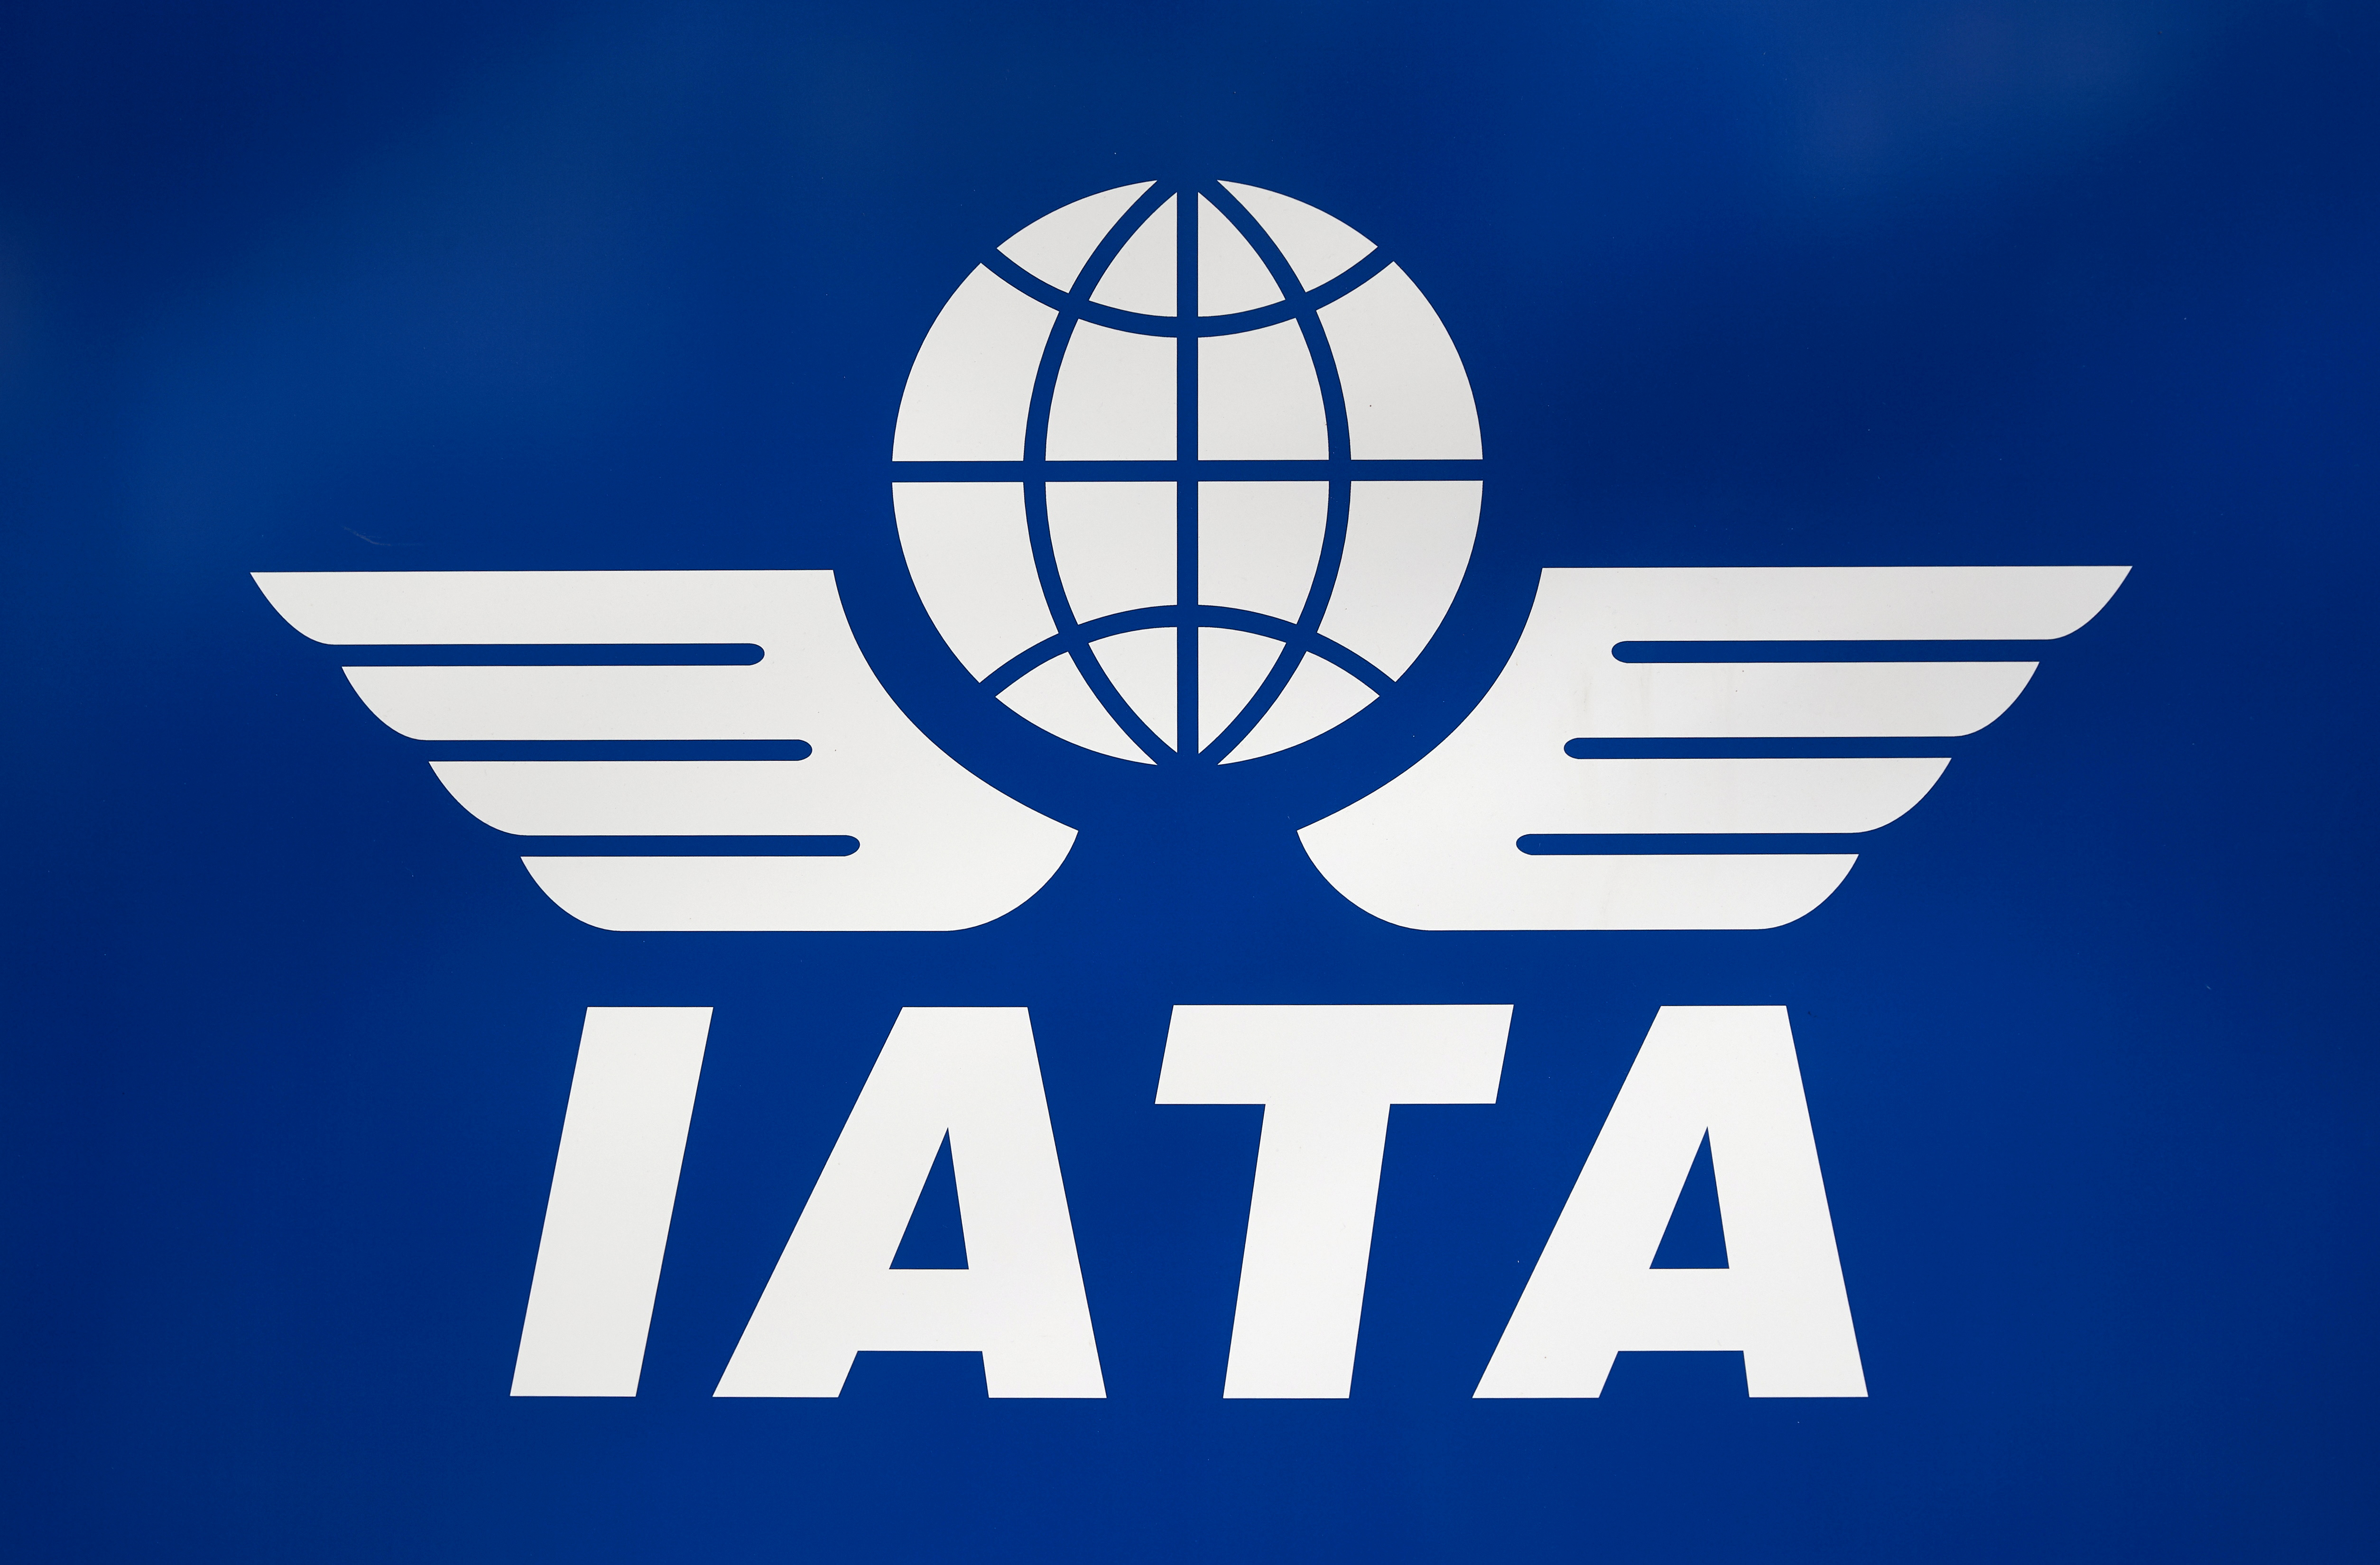 A logo of the International Air Transport Association (IATA) is pictured in Geneva, Switzerland, March 13, 2020. REUTERS/Denis Balibouse/File Photo